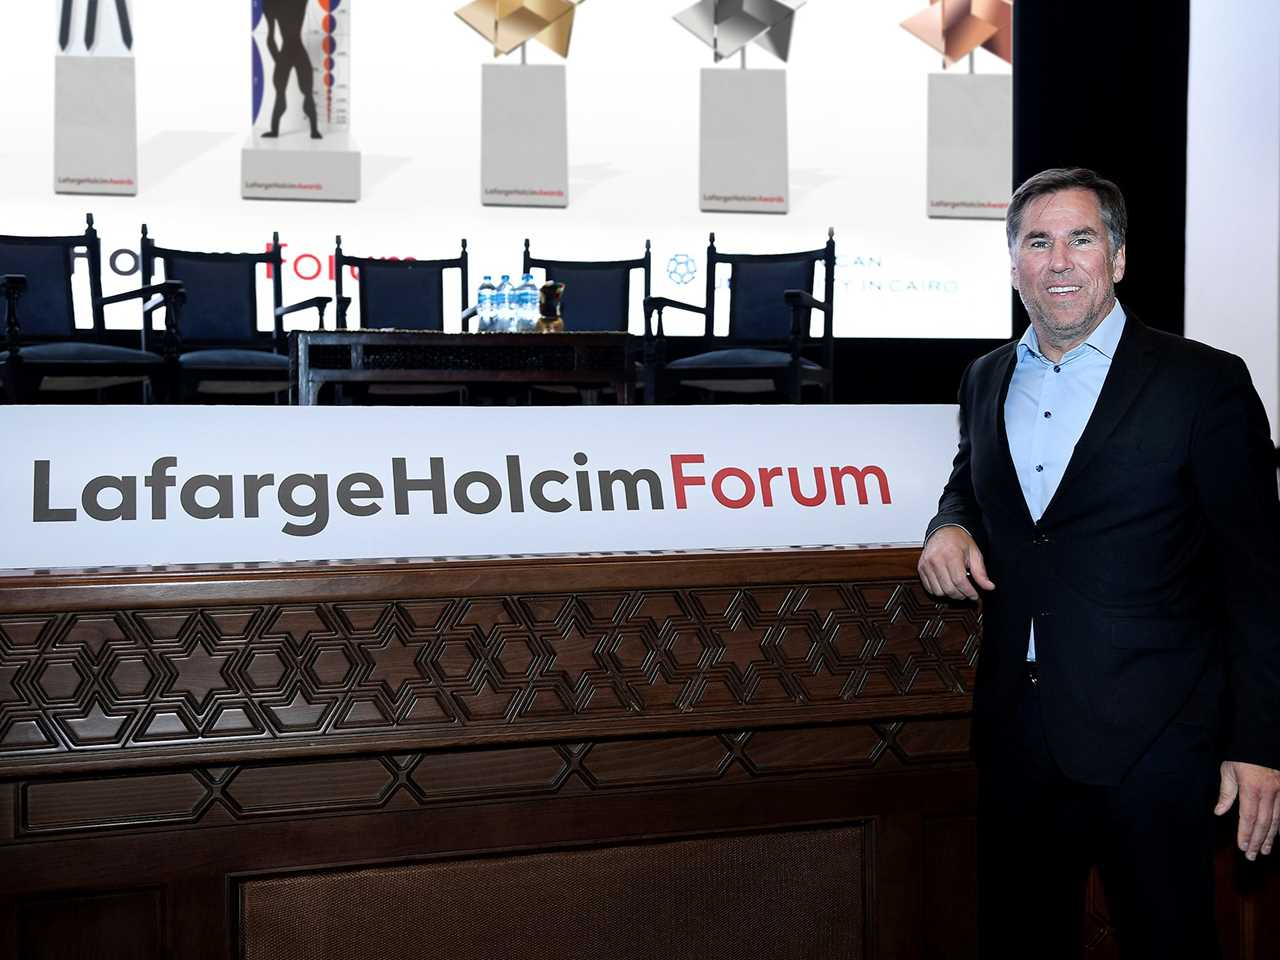 6th LafargeHolcim Forum